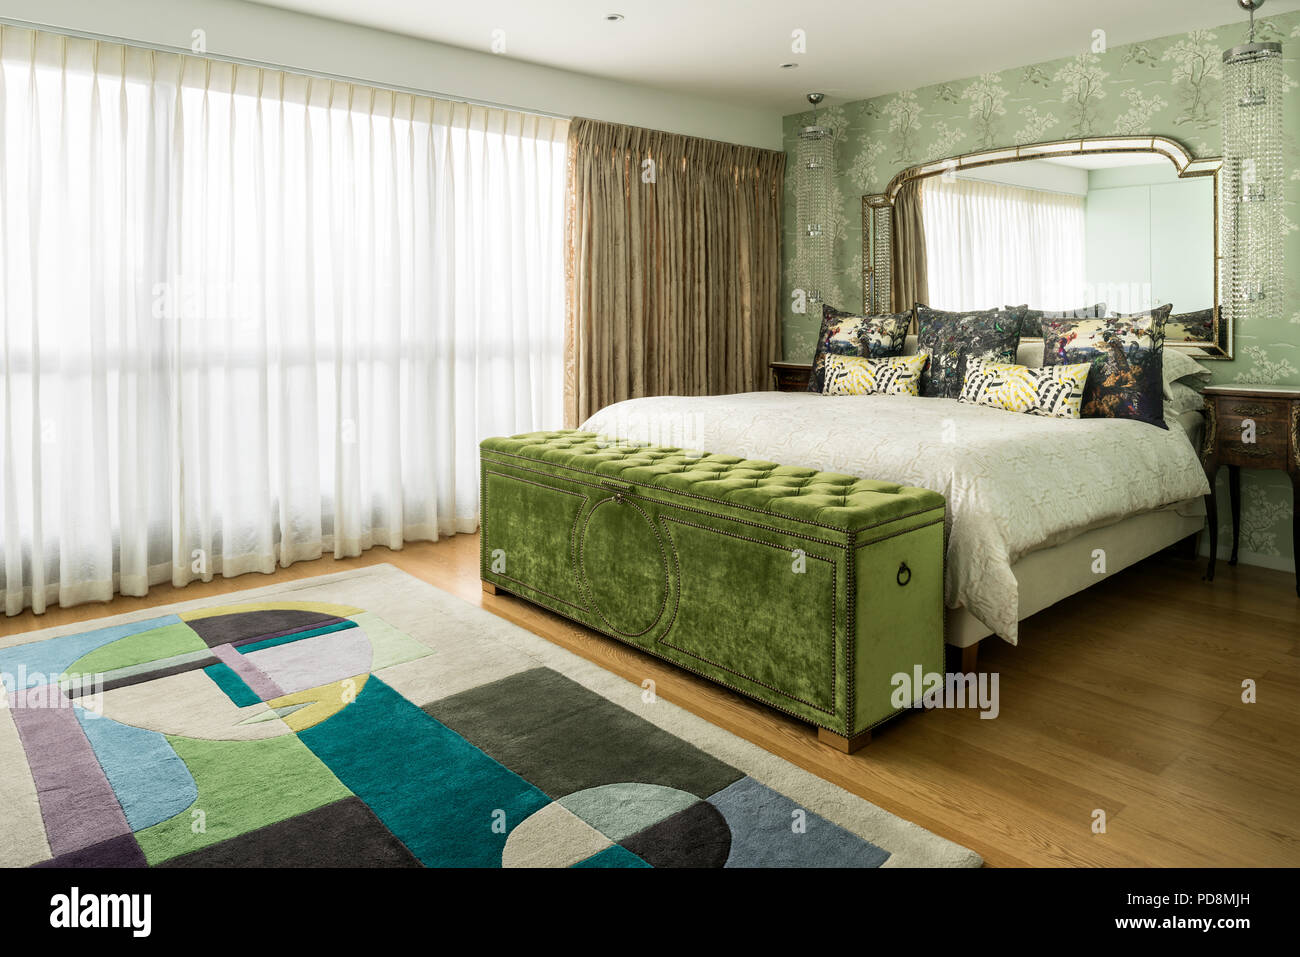 Lime green blanket box at foot of bed in room with net curtains - Stock Image